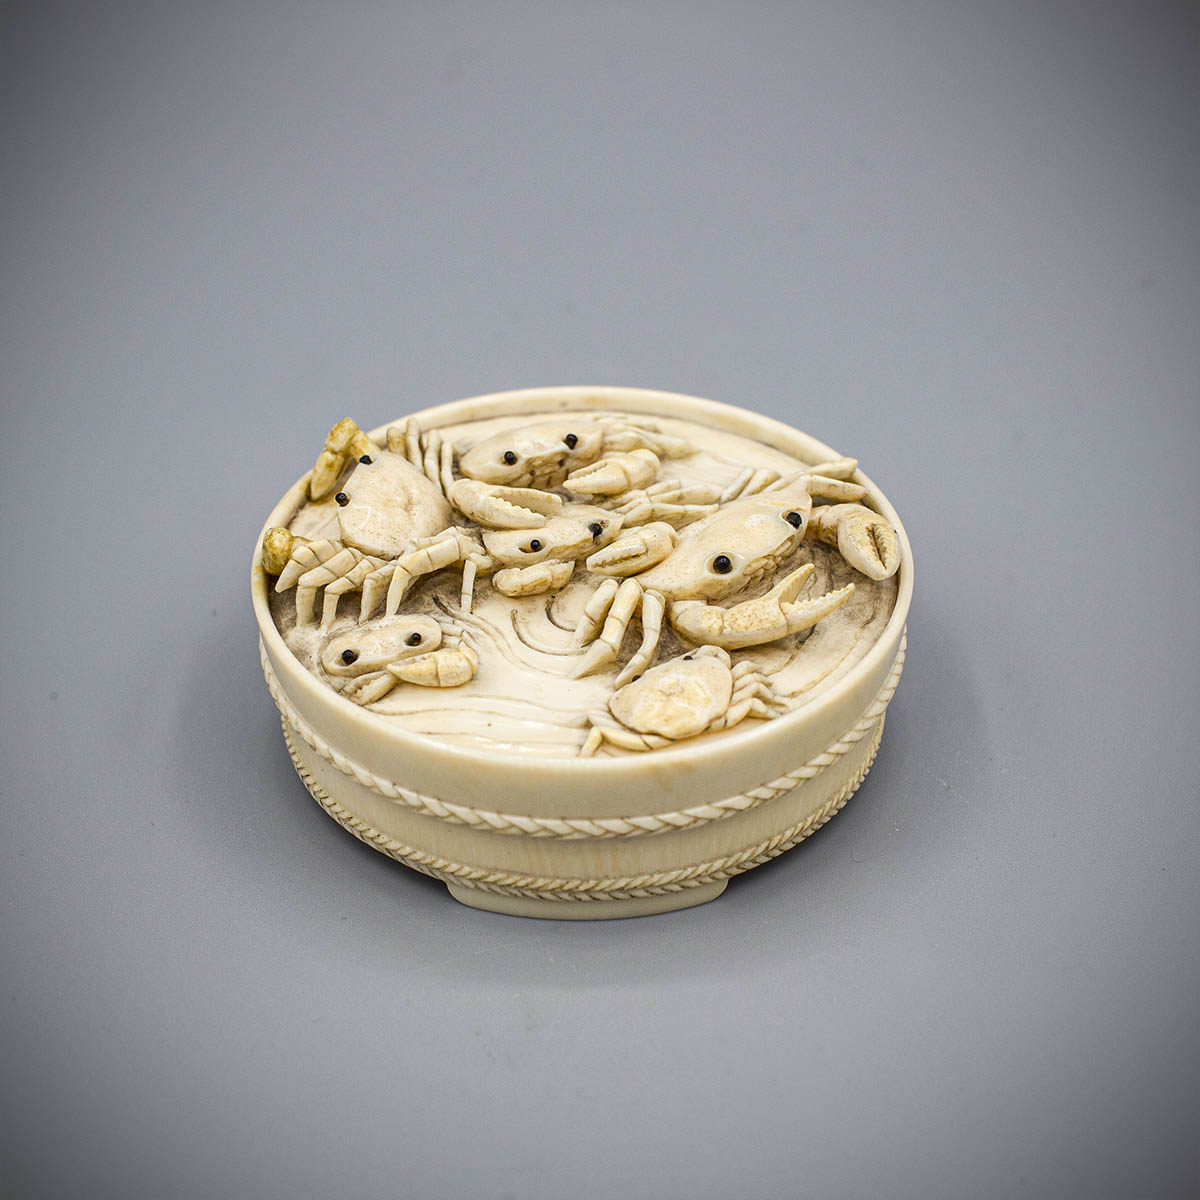 Small ivory box carved as a tub of crabs, MR3485_v.1-2